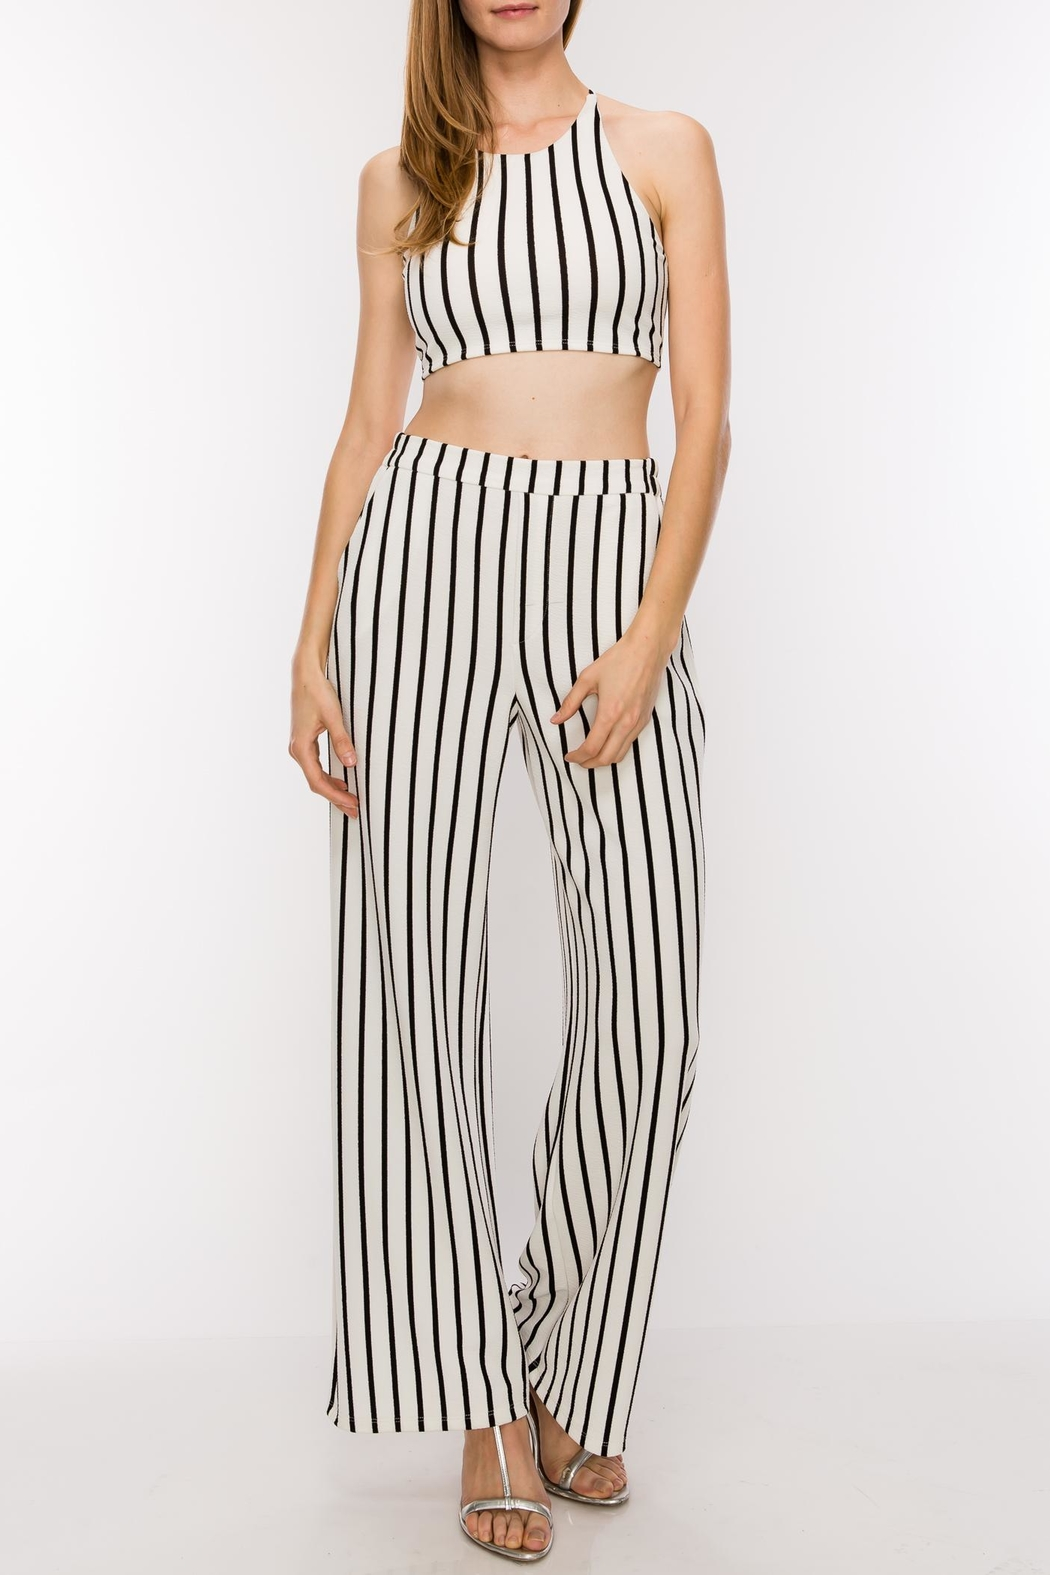 HYFVE Striped Two Piece - Side Cropped Image